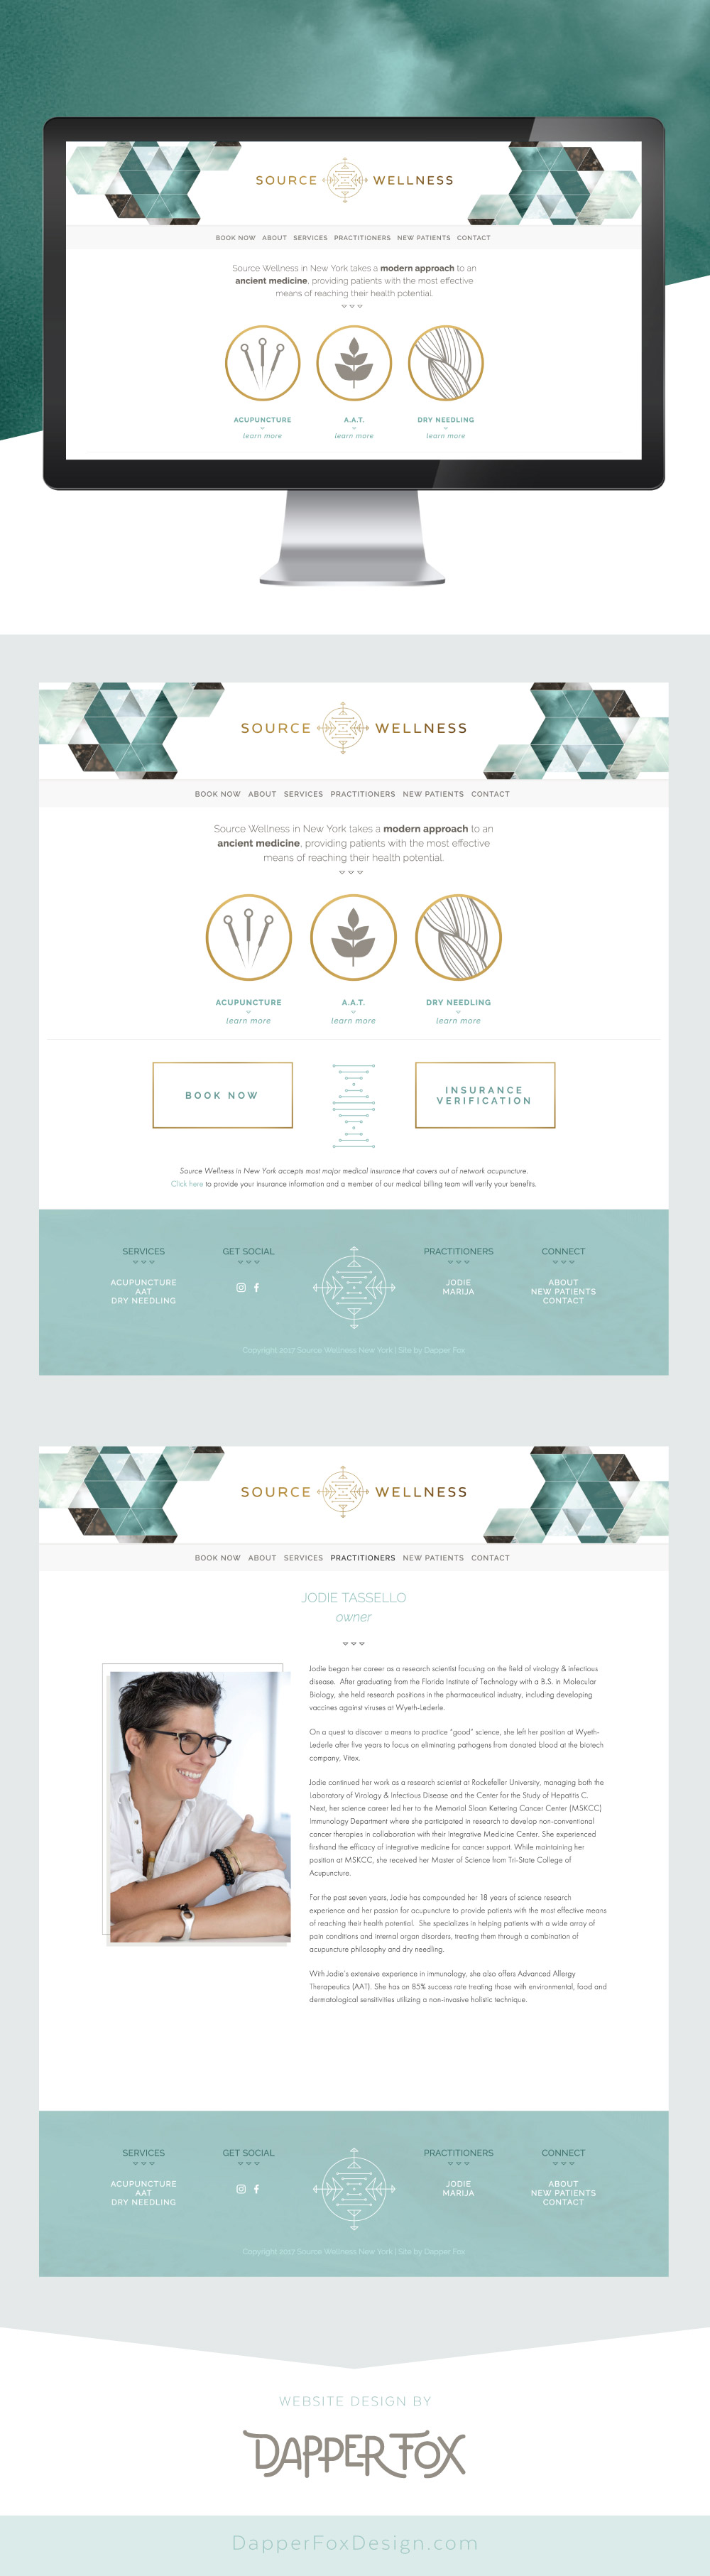 Home Page Design - Source Wellness Acupuncture New York Squarespace Website Design and Branding by Dapper Fox Design